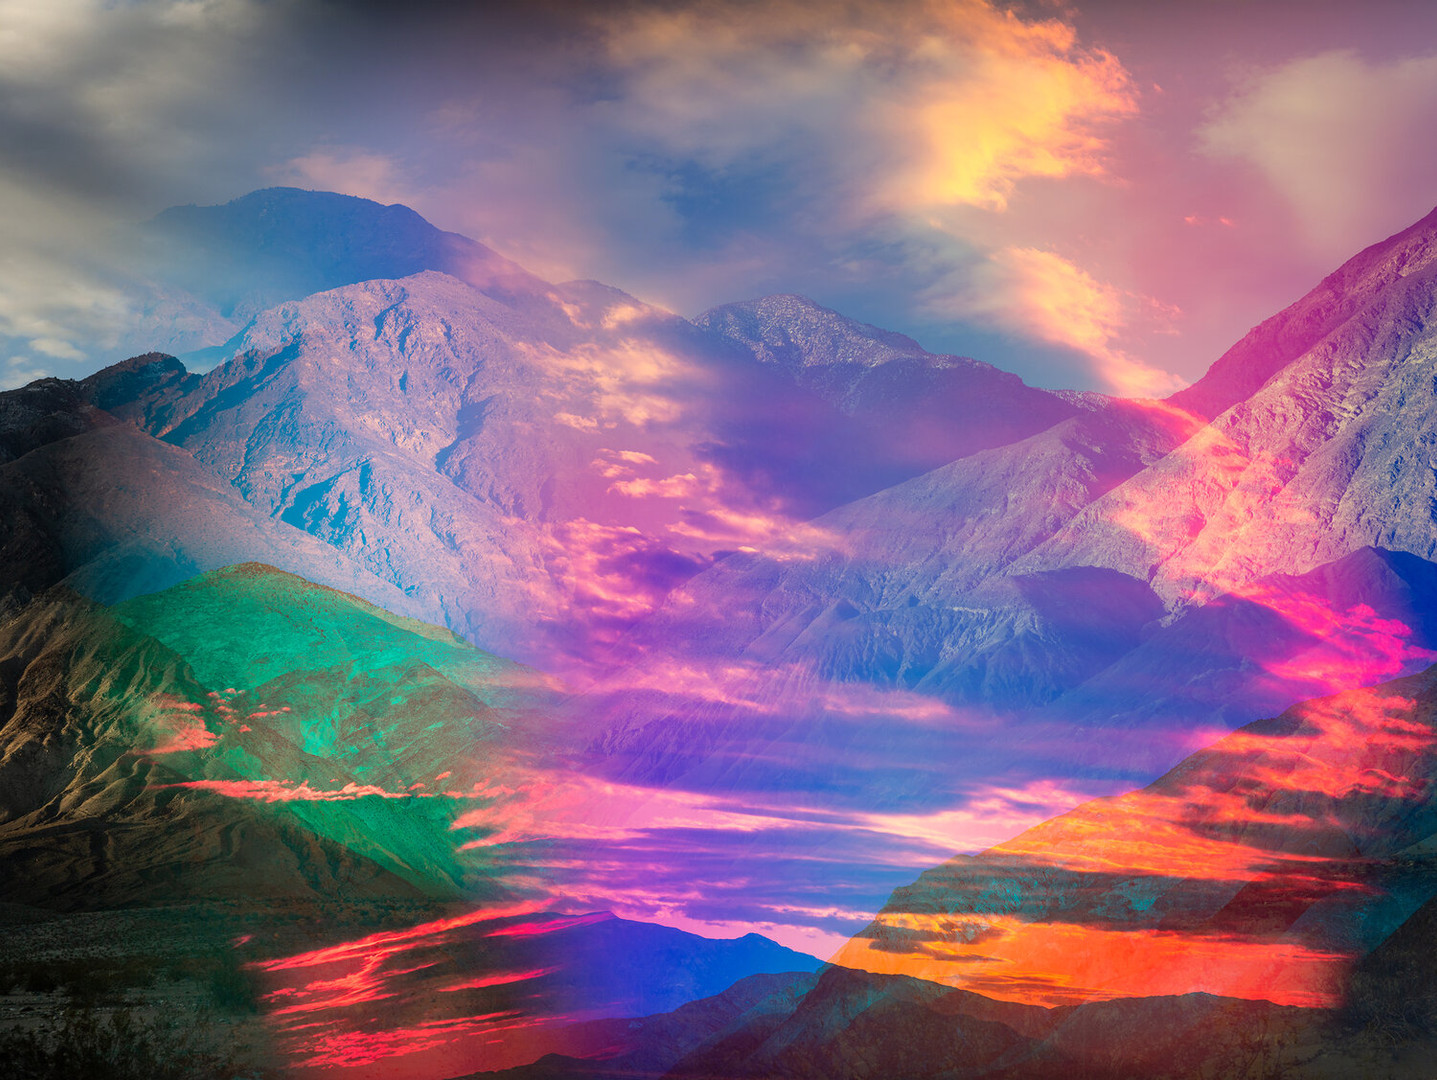 Terri Loewenthal Psychscape 01 (Black Mountain, CA) 2020 archival pigment print 30 x 40 in. edition 1/5 + 2AP courtesy of CULT | Aimee Friberg Exhibitions, Galerie Hug, Jackson Fine Art